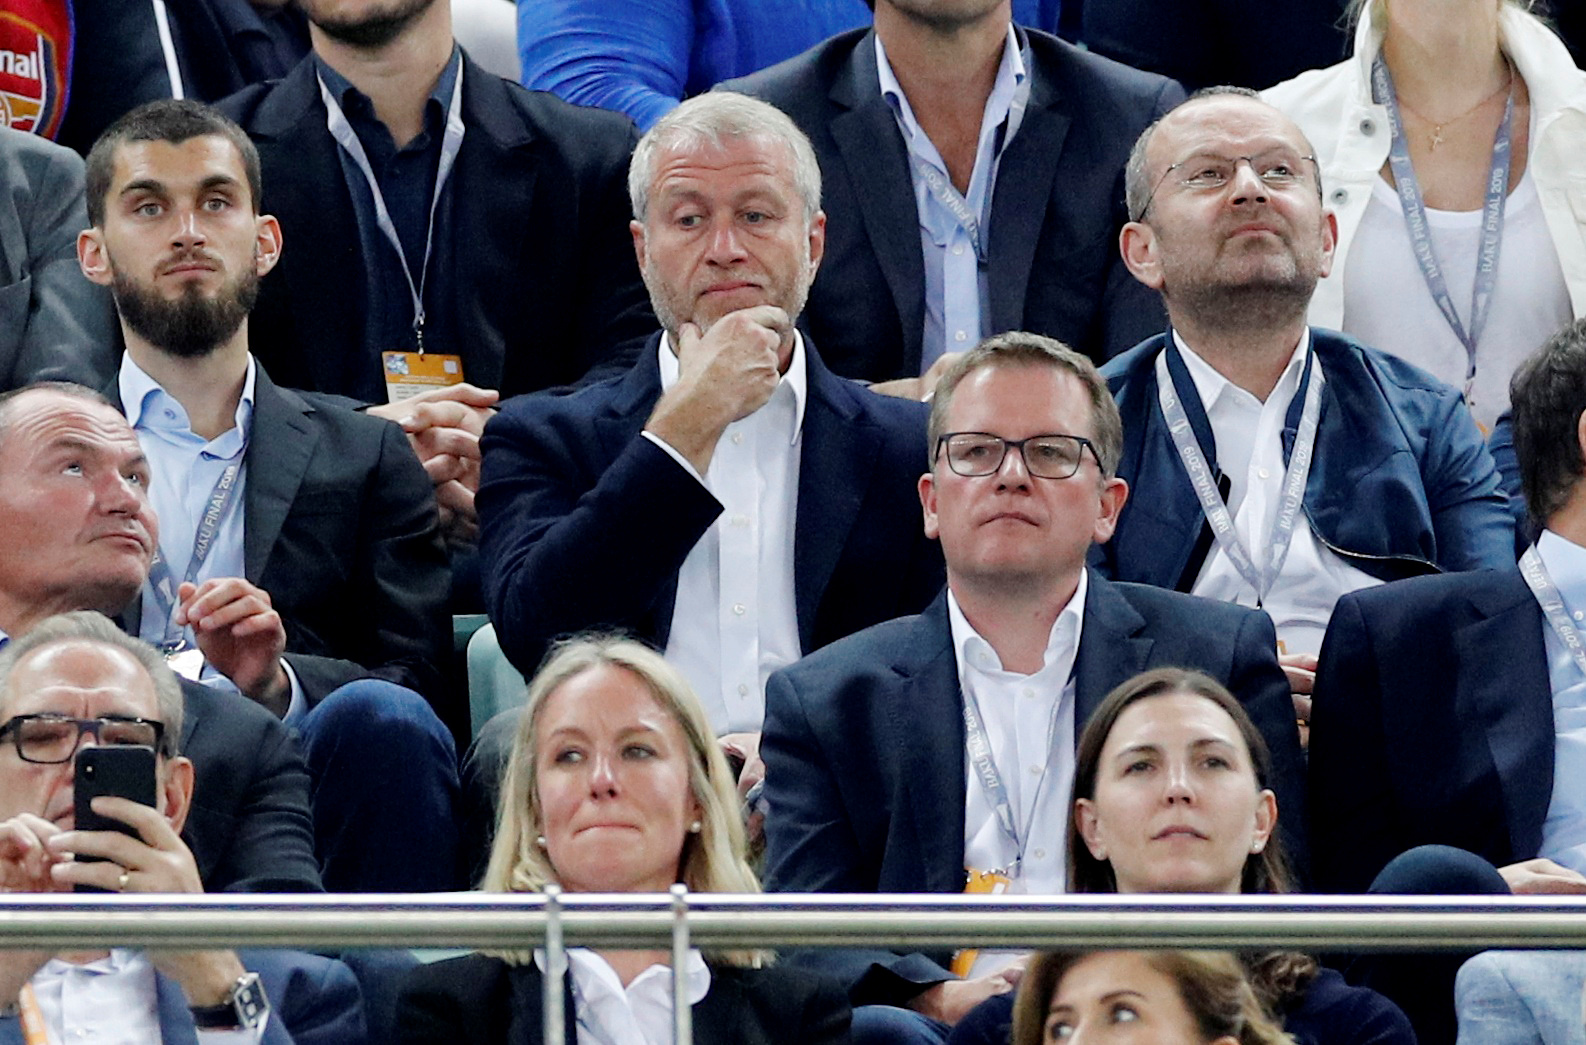 Soccer Football - Europa League Final - Chelsea v Arsenal - Baku Olympic Stadium, Baku, Azerbaijan - May 29, 2019  Chelsea owner Roman Abramovich in the stands beofre the match   REUTERS/Phil Noble